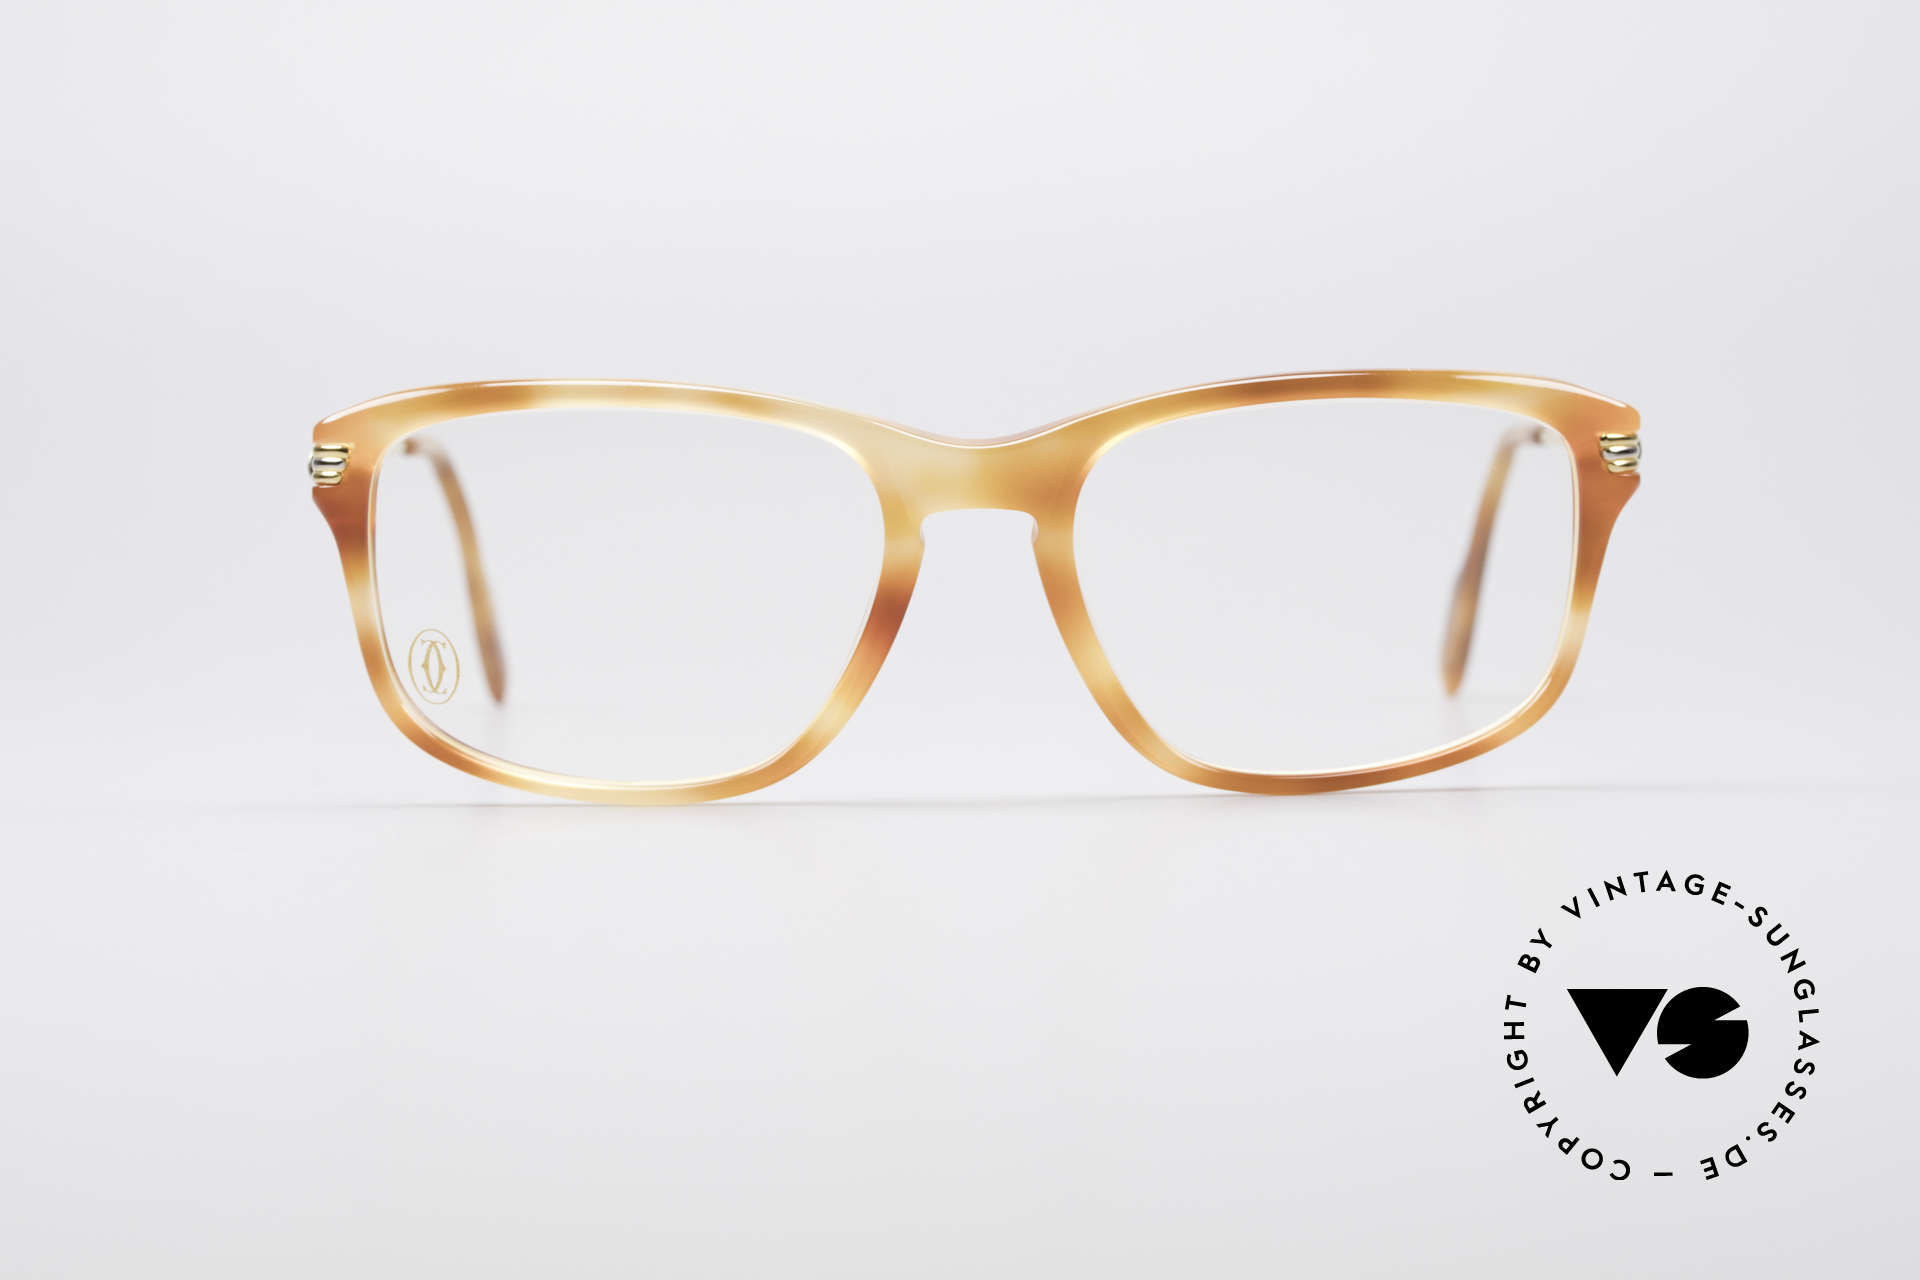 Cartier Lumen - S 90's Luxury Vintage Glasses, 22ct gold-plated & great frame pattern: 'marbled blond', Made for Men and Women